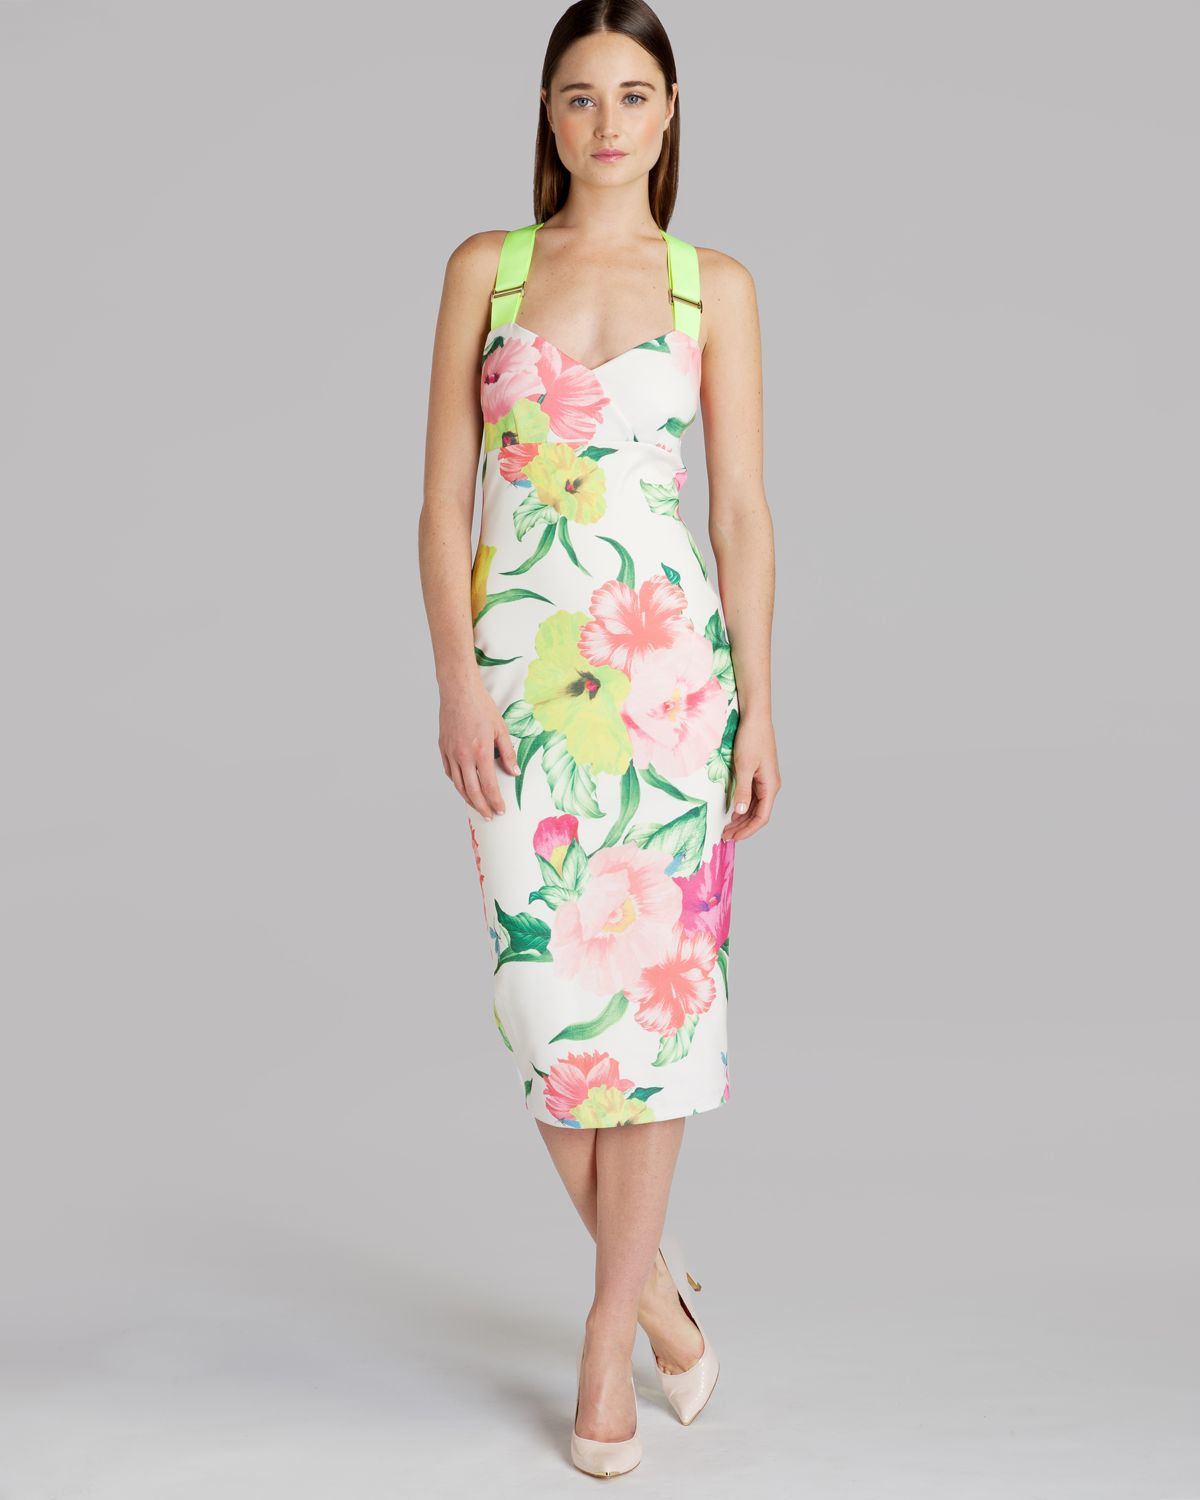 Flower Dress: Ted Baker Dress Taylar Floral Print In Pink